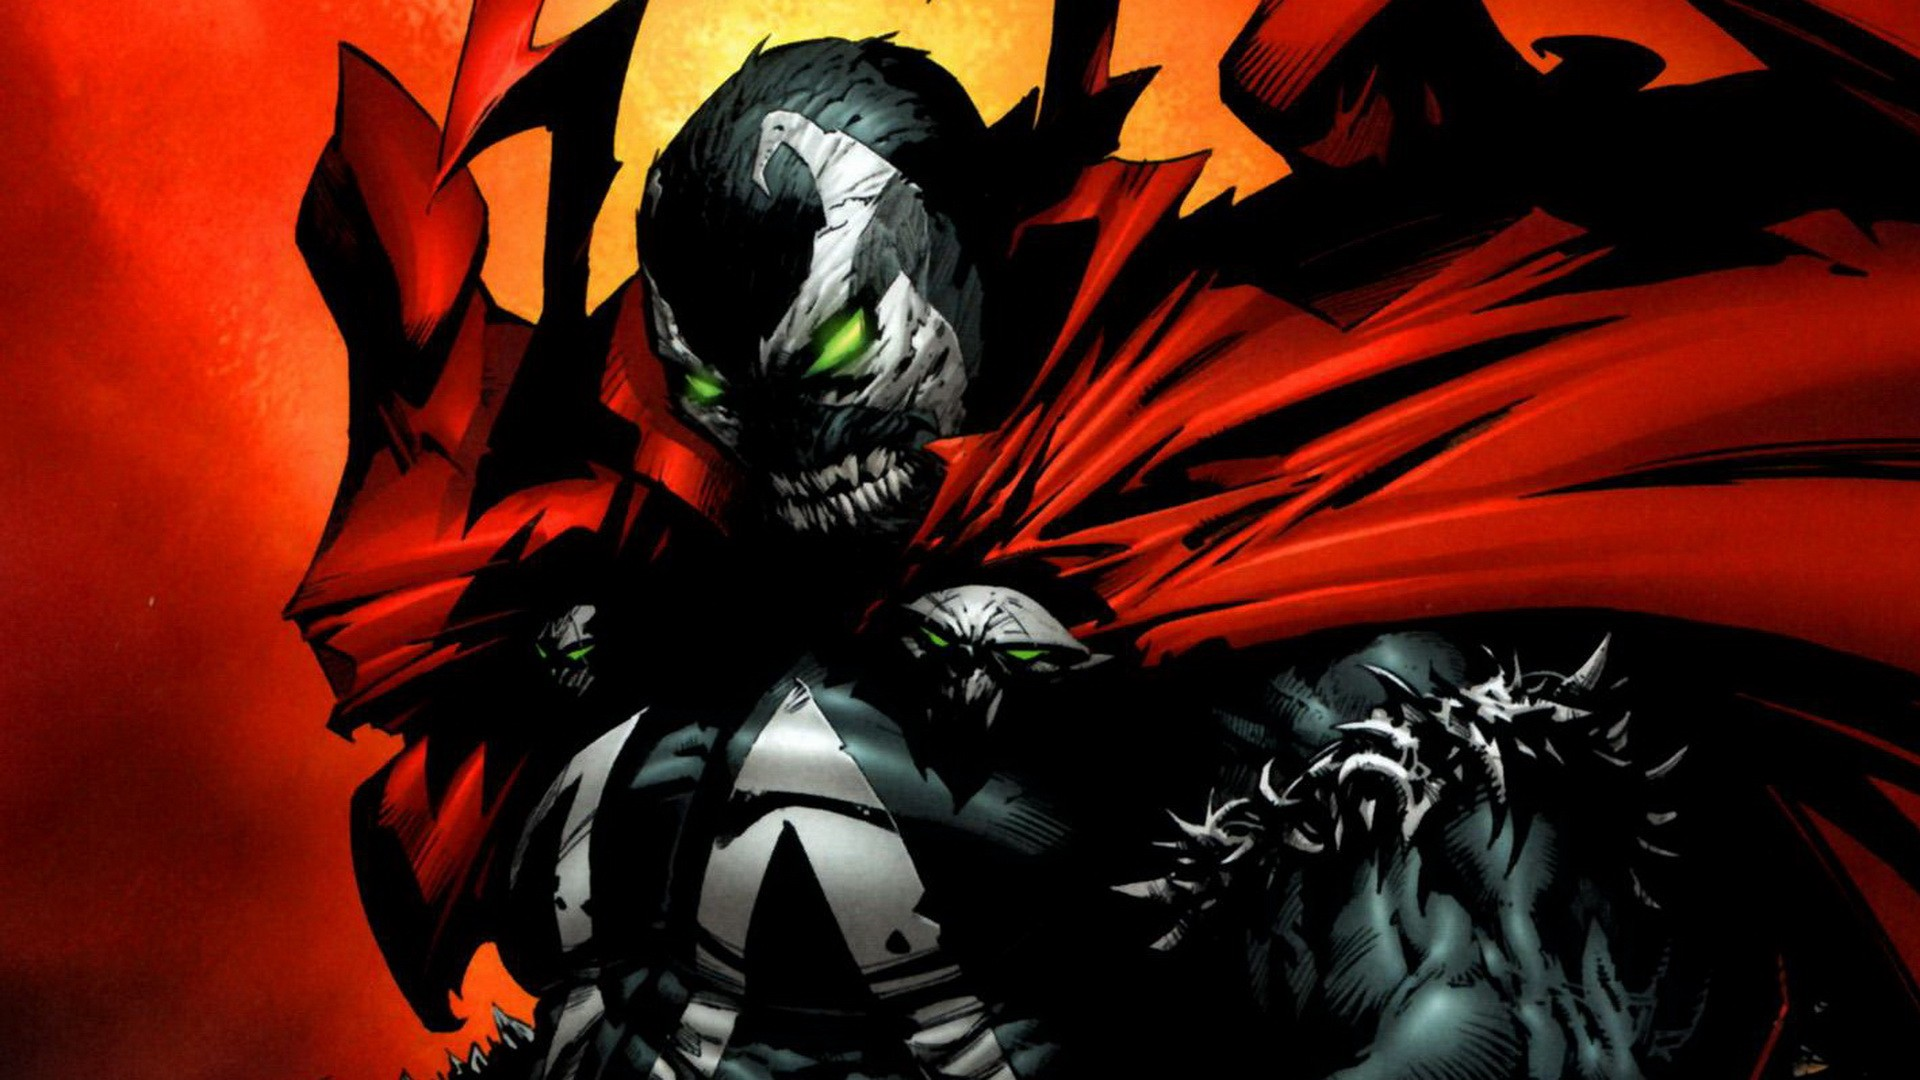 spawn wallpapers 1920x1080 - photo #38